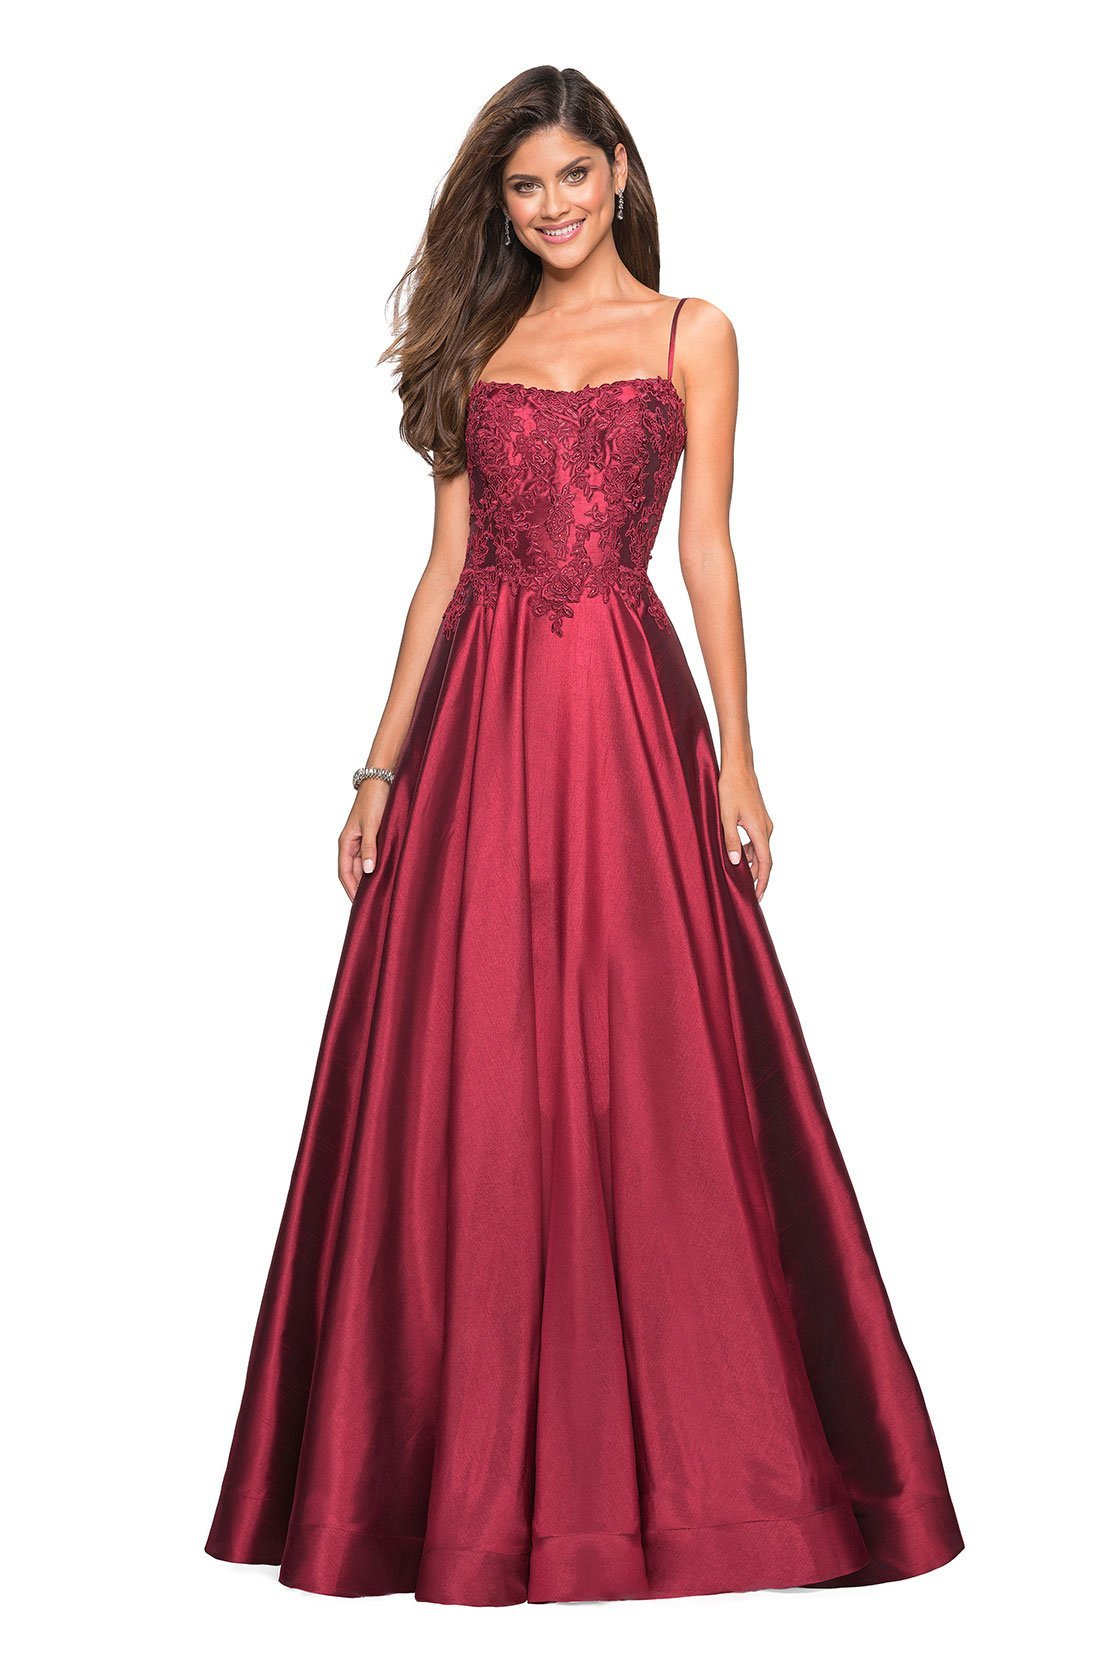 La Femme - Lace Applique Spaghetti Strap Mikado Gown 27222 In Red